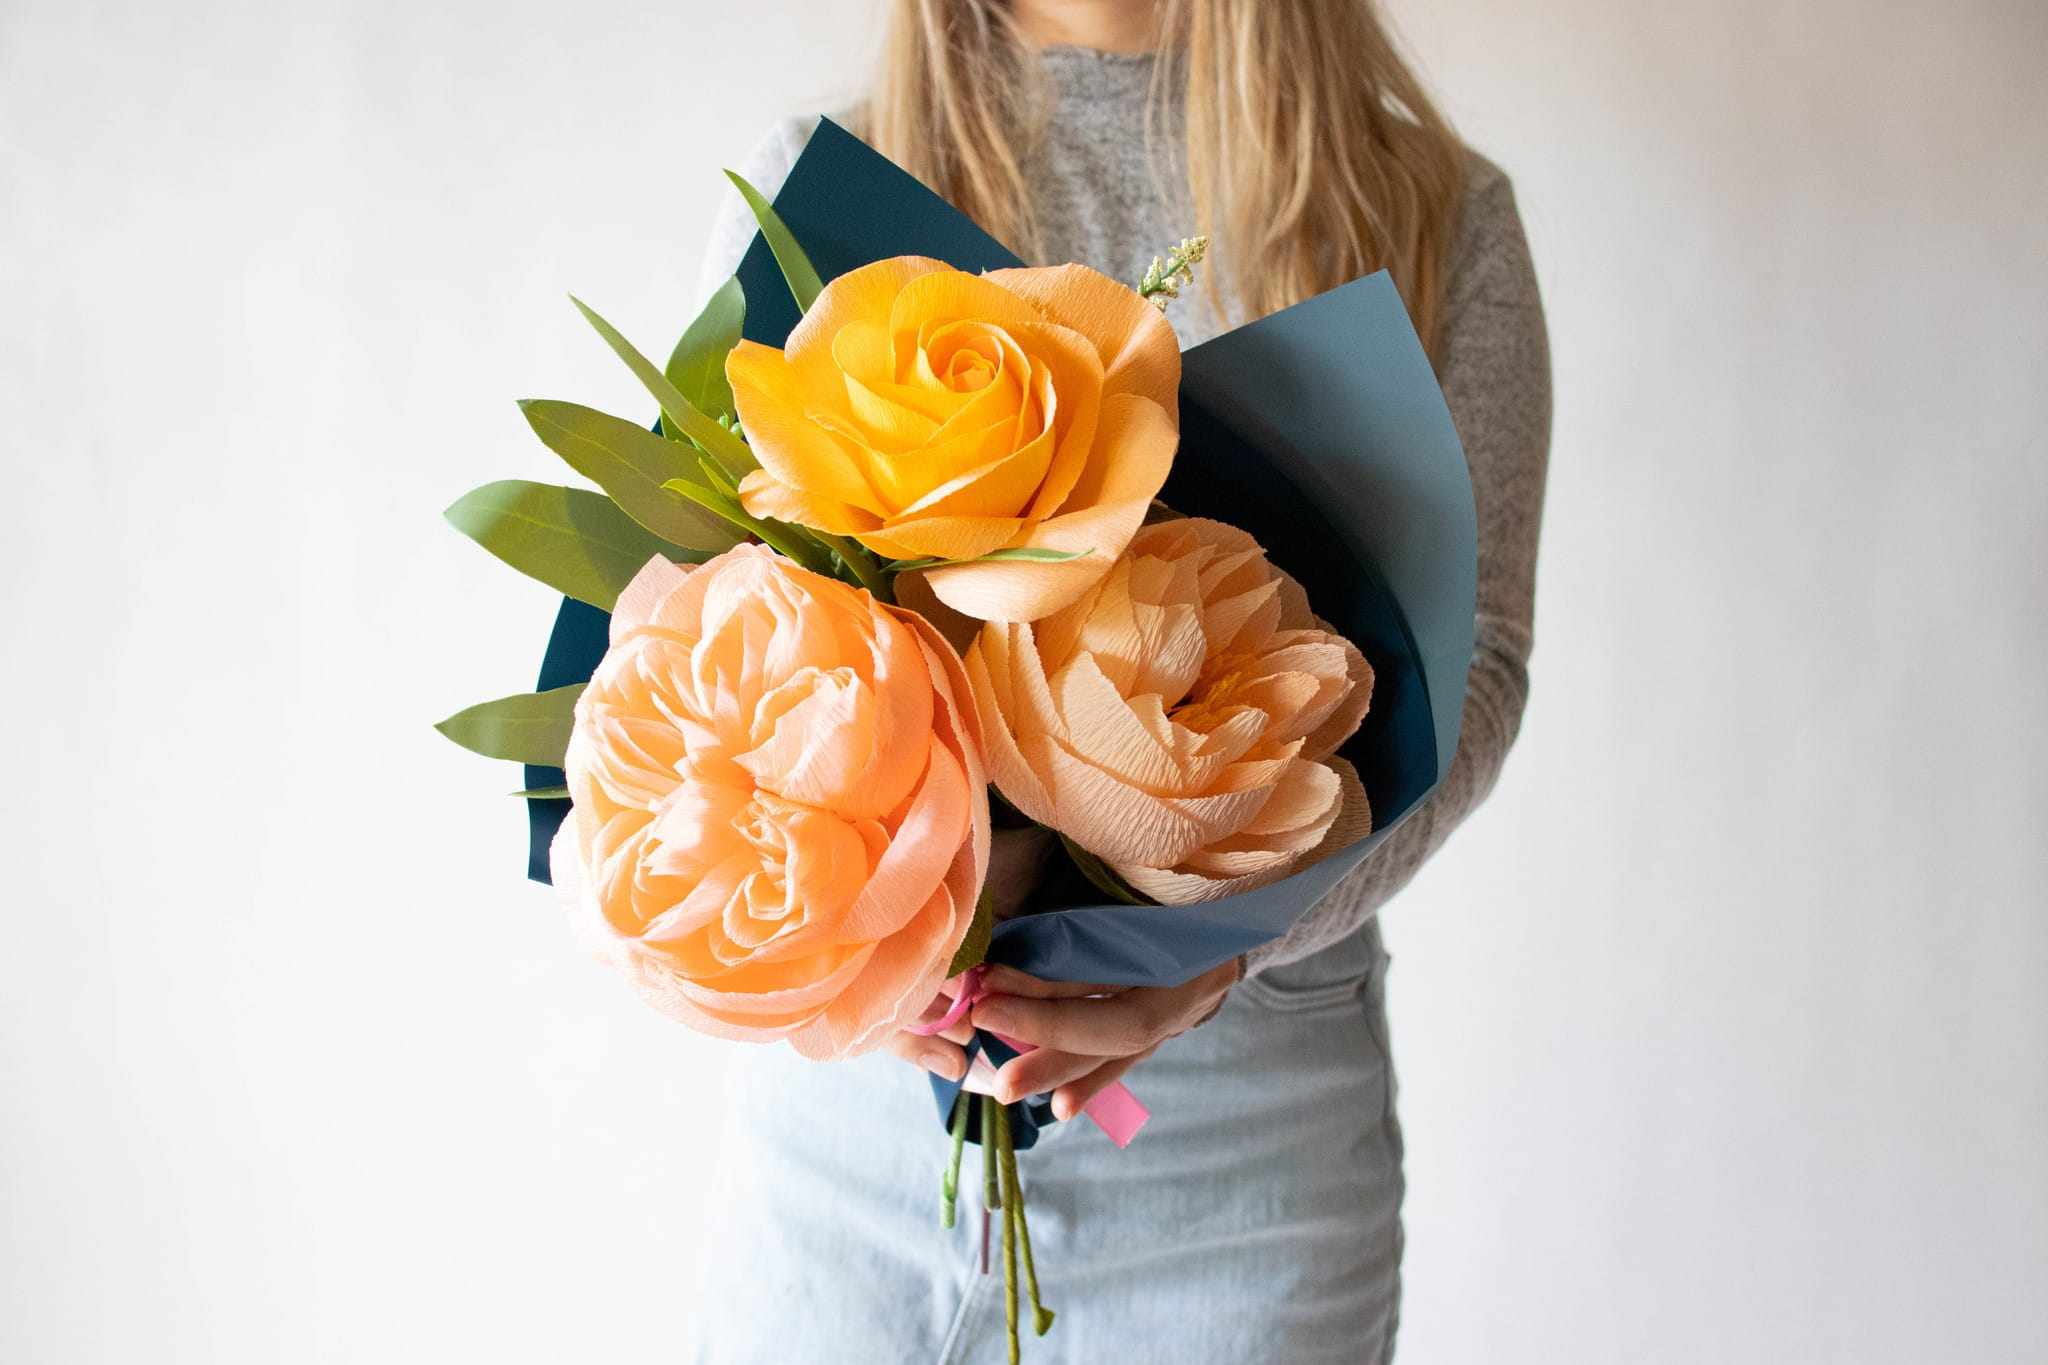 Florist holding a colorful bouquet of paper flowers and faux greenery